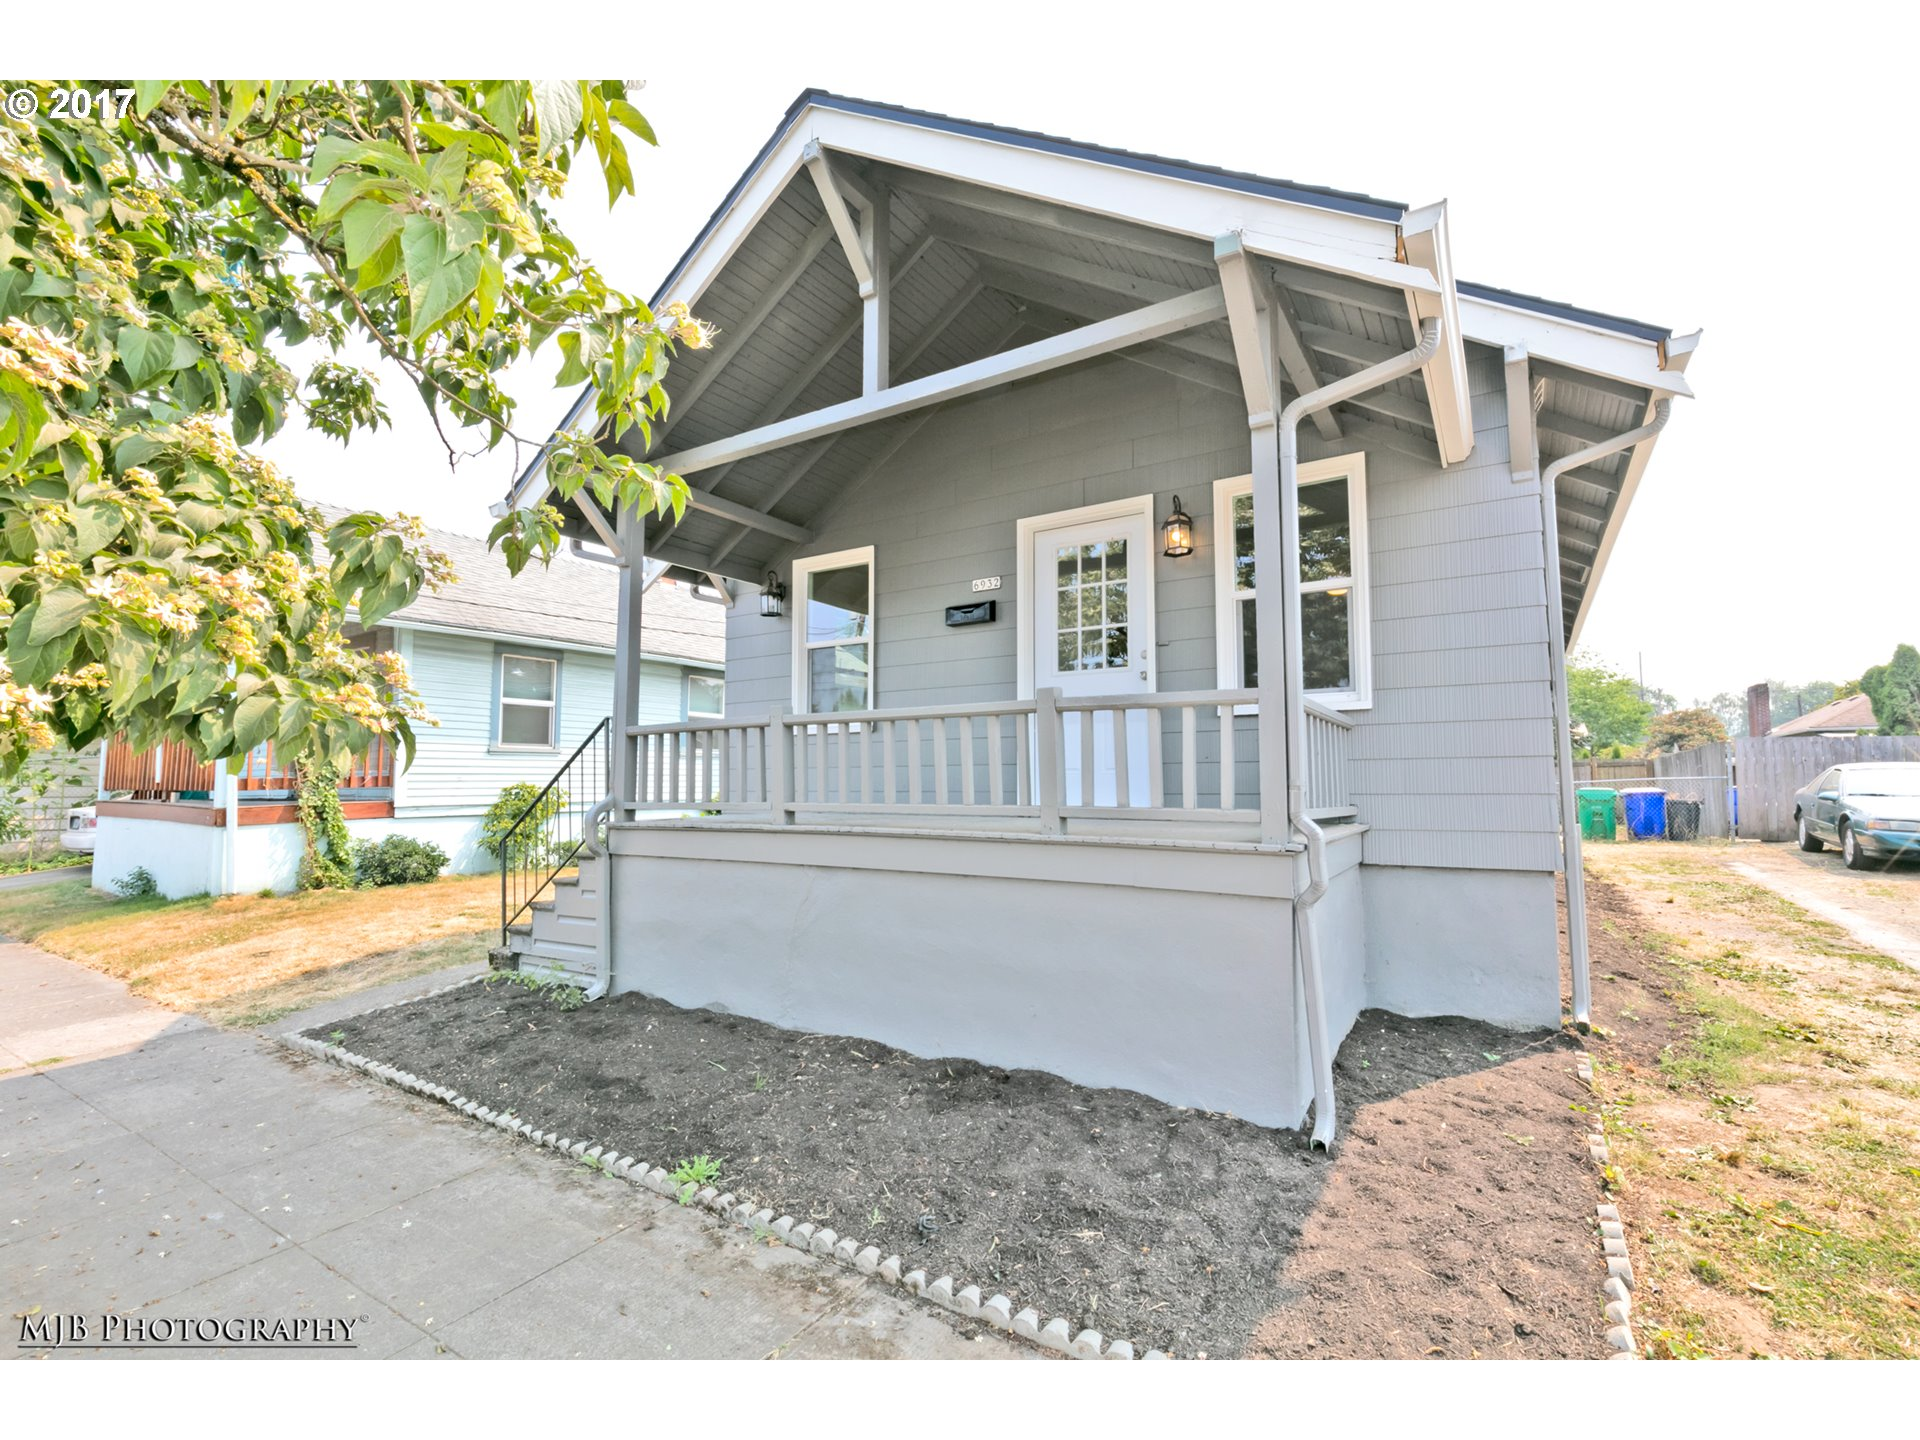 Charming PDX style home in popular St. Johns neighborhd! 83 WalkScore & 96 BikeScore! Features inc: covered front porch, all new paint, beautiful wood flrs, full unfin basement,  beautiful open kitchen w/new SS apps, all new lighting & plumbing fixtures, brushed nickel hardware, remod bathrm, forced air natural gas heat, new millwork, vinyl windows & more all on a private, partially fenced yard!